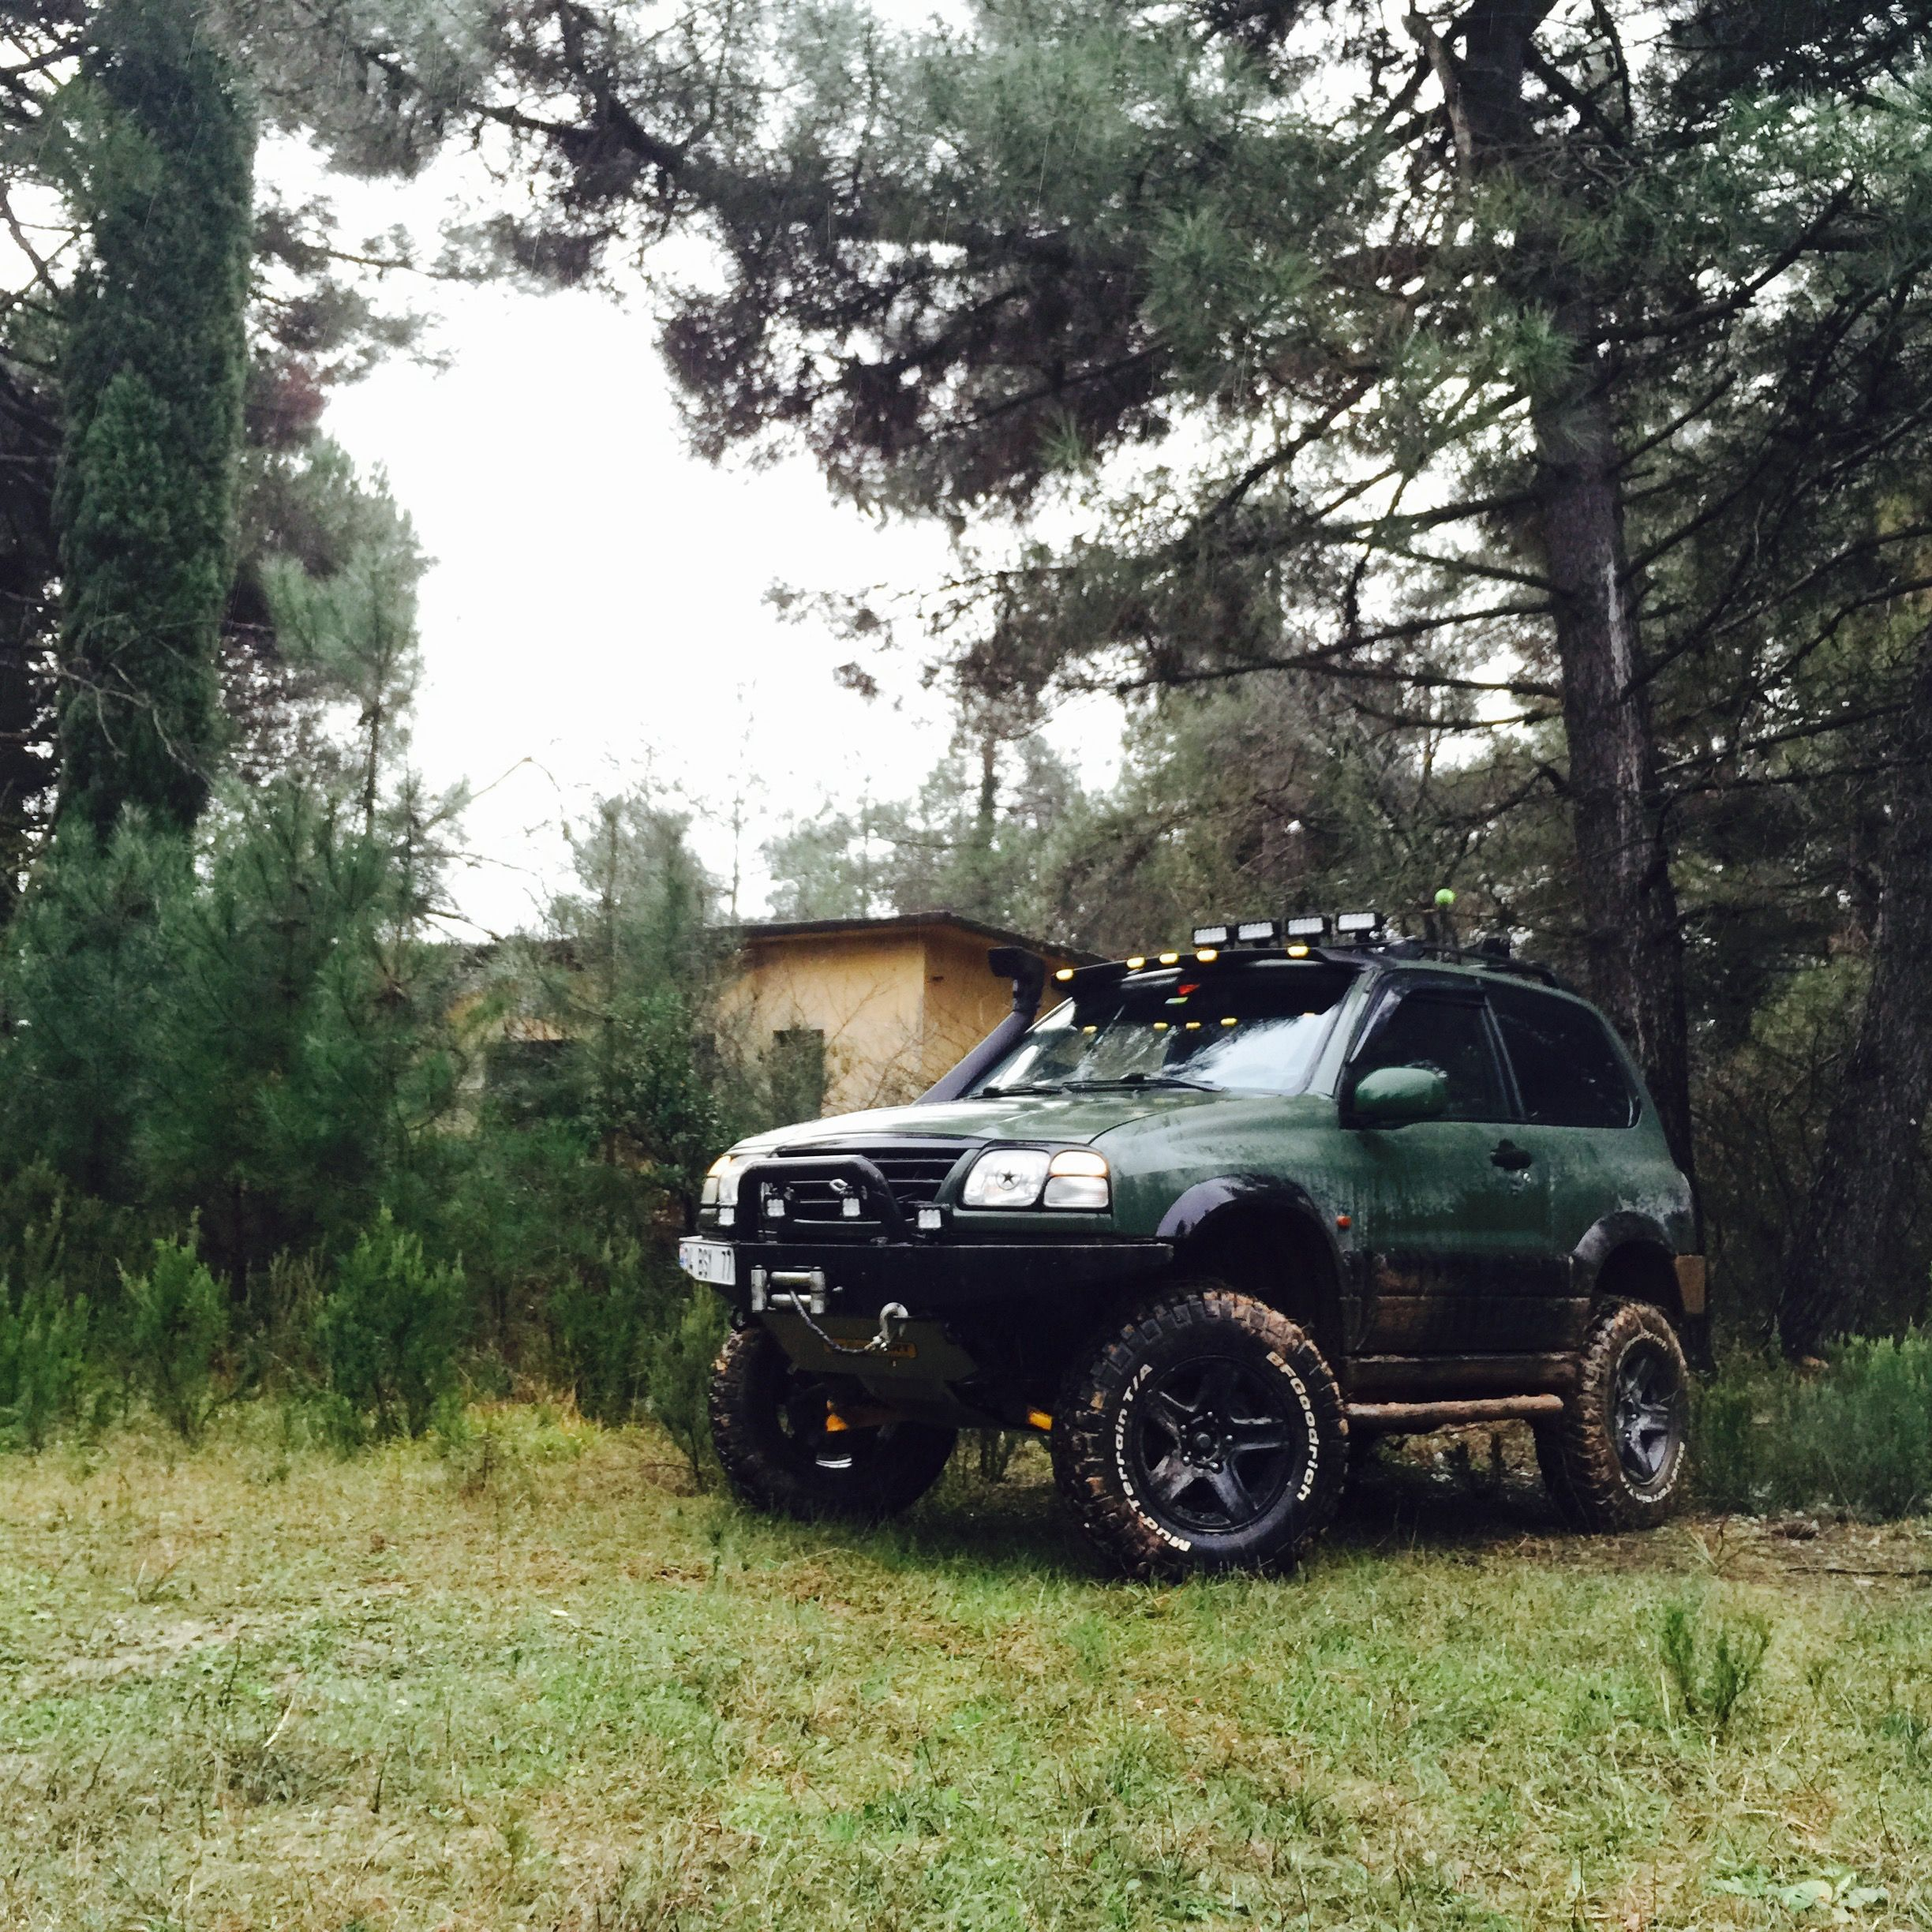 Grand vitara offroad chevrolet samurai jeeps 4x4 project ideas motorcycles roads